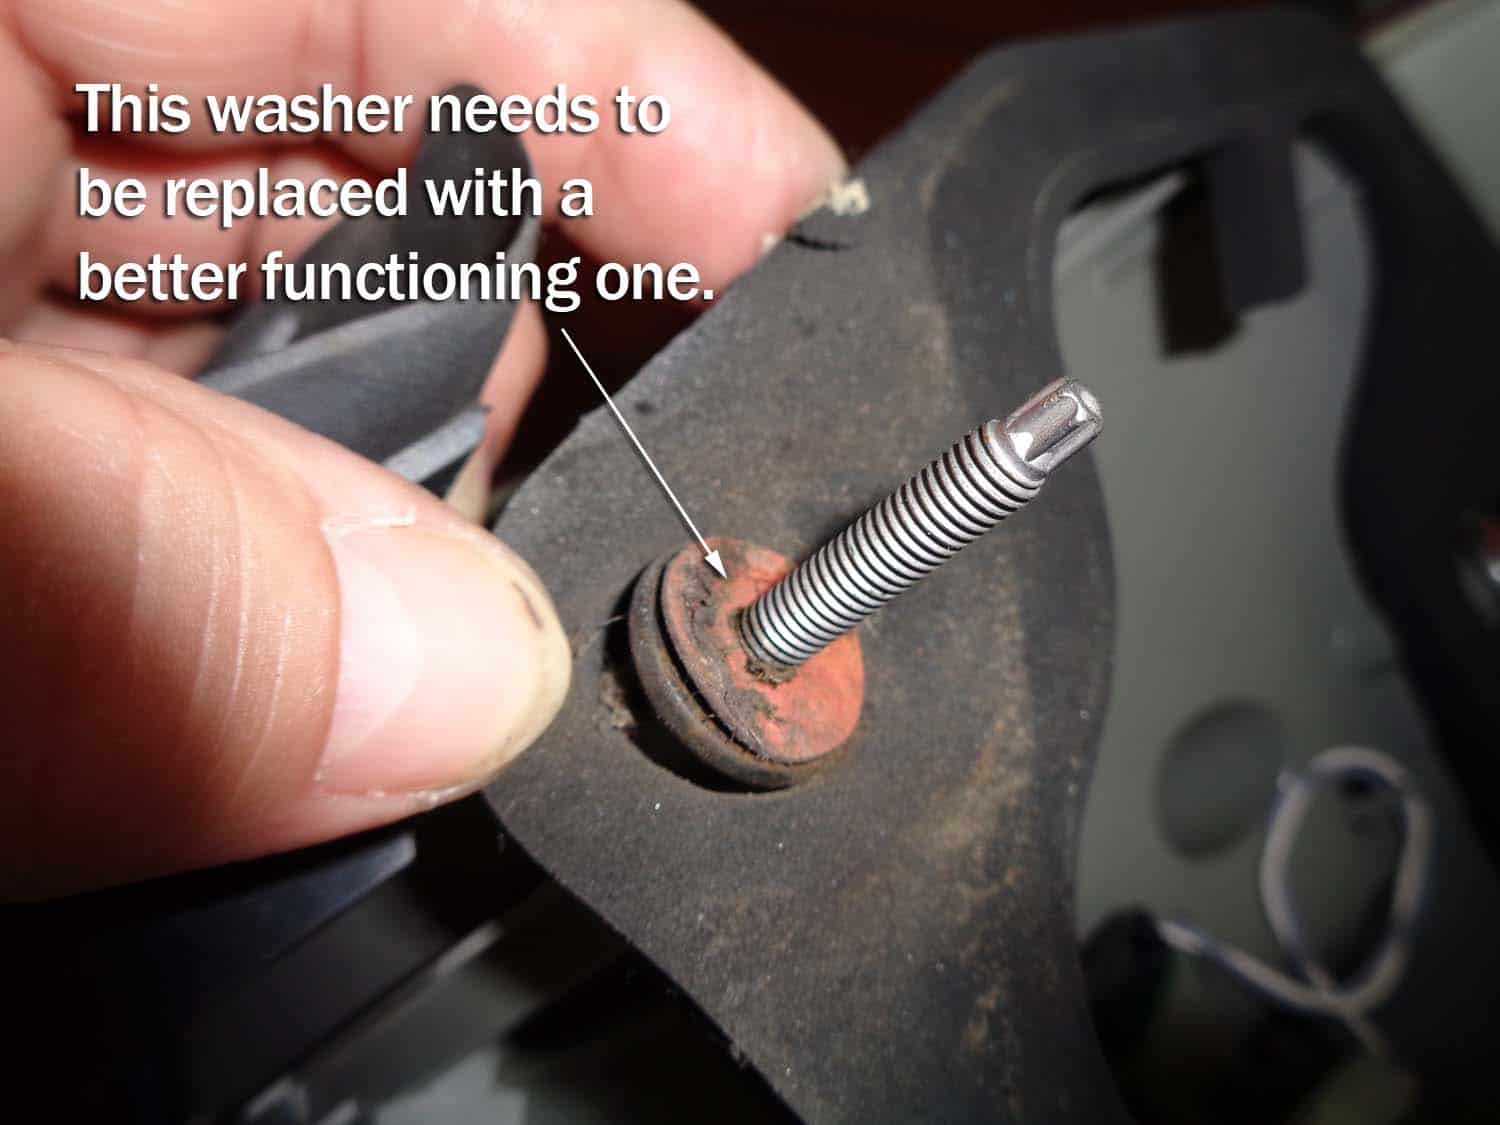 Nylon washer has failed and needs to be replaced